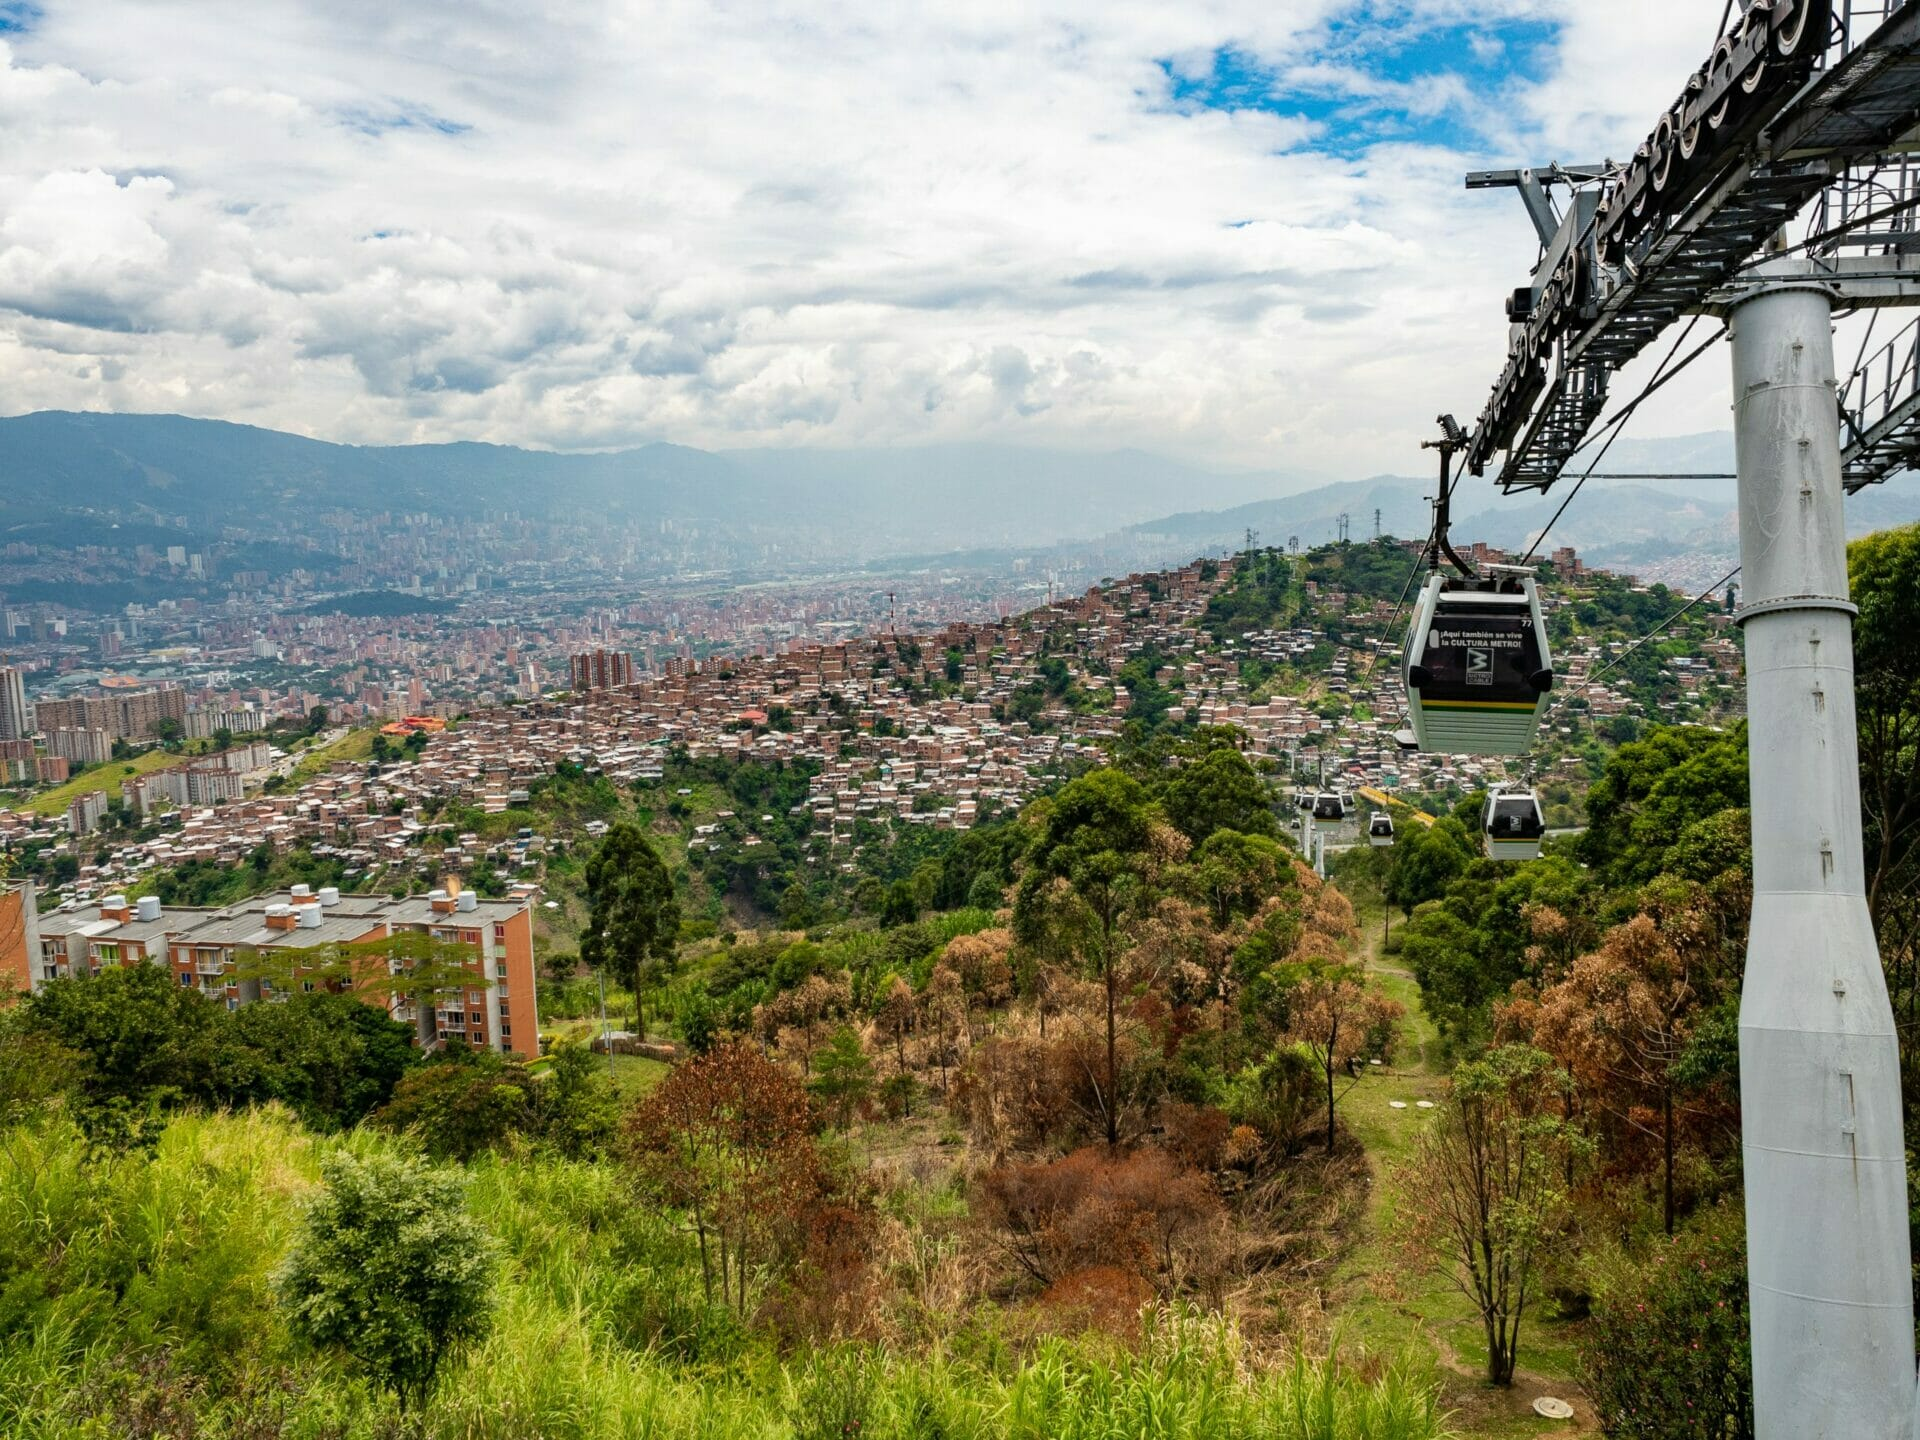 View from Medellín Metrocable cable car